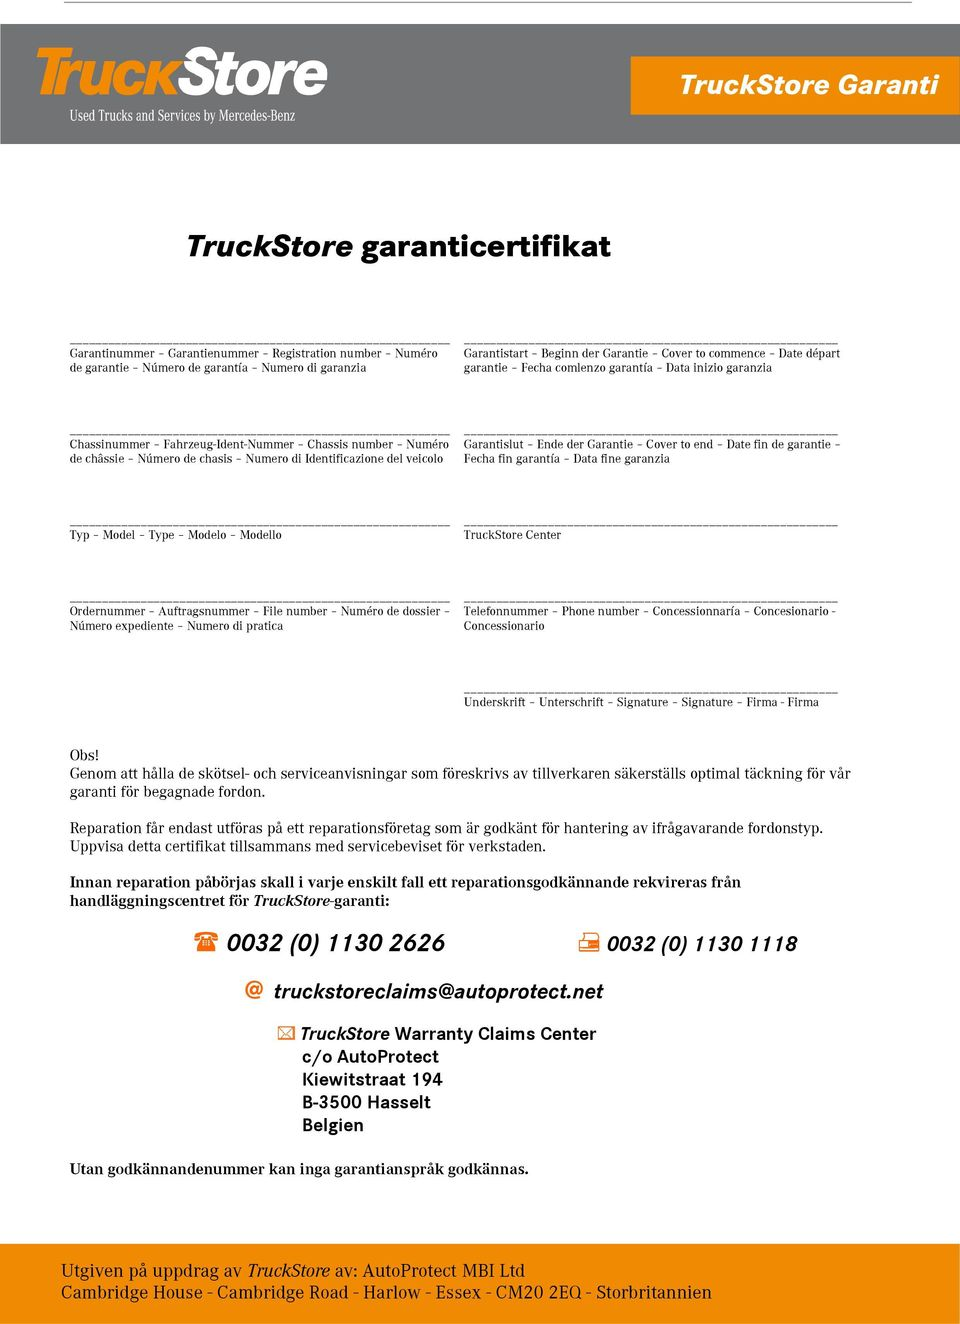 Garantislut Ende der Garantie Cover to end Date fin de garantie Fecha fin garantía Data fine garanzia _ Typ Model Type Modelo Modello TruckStore Center _ Ordernummer Auftragsnummer File number Numéro